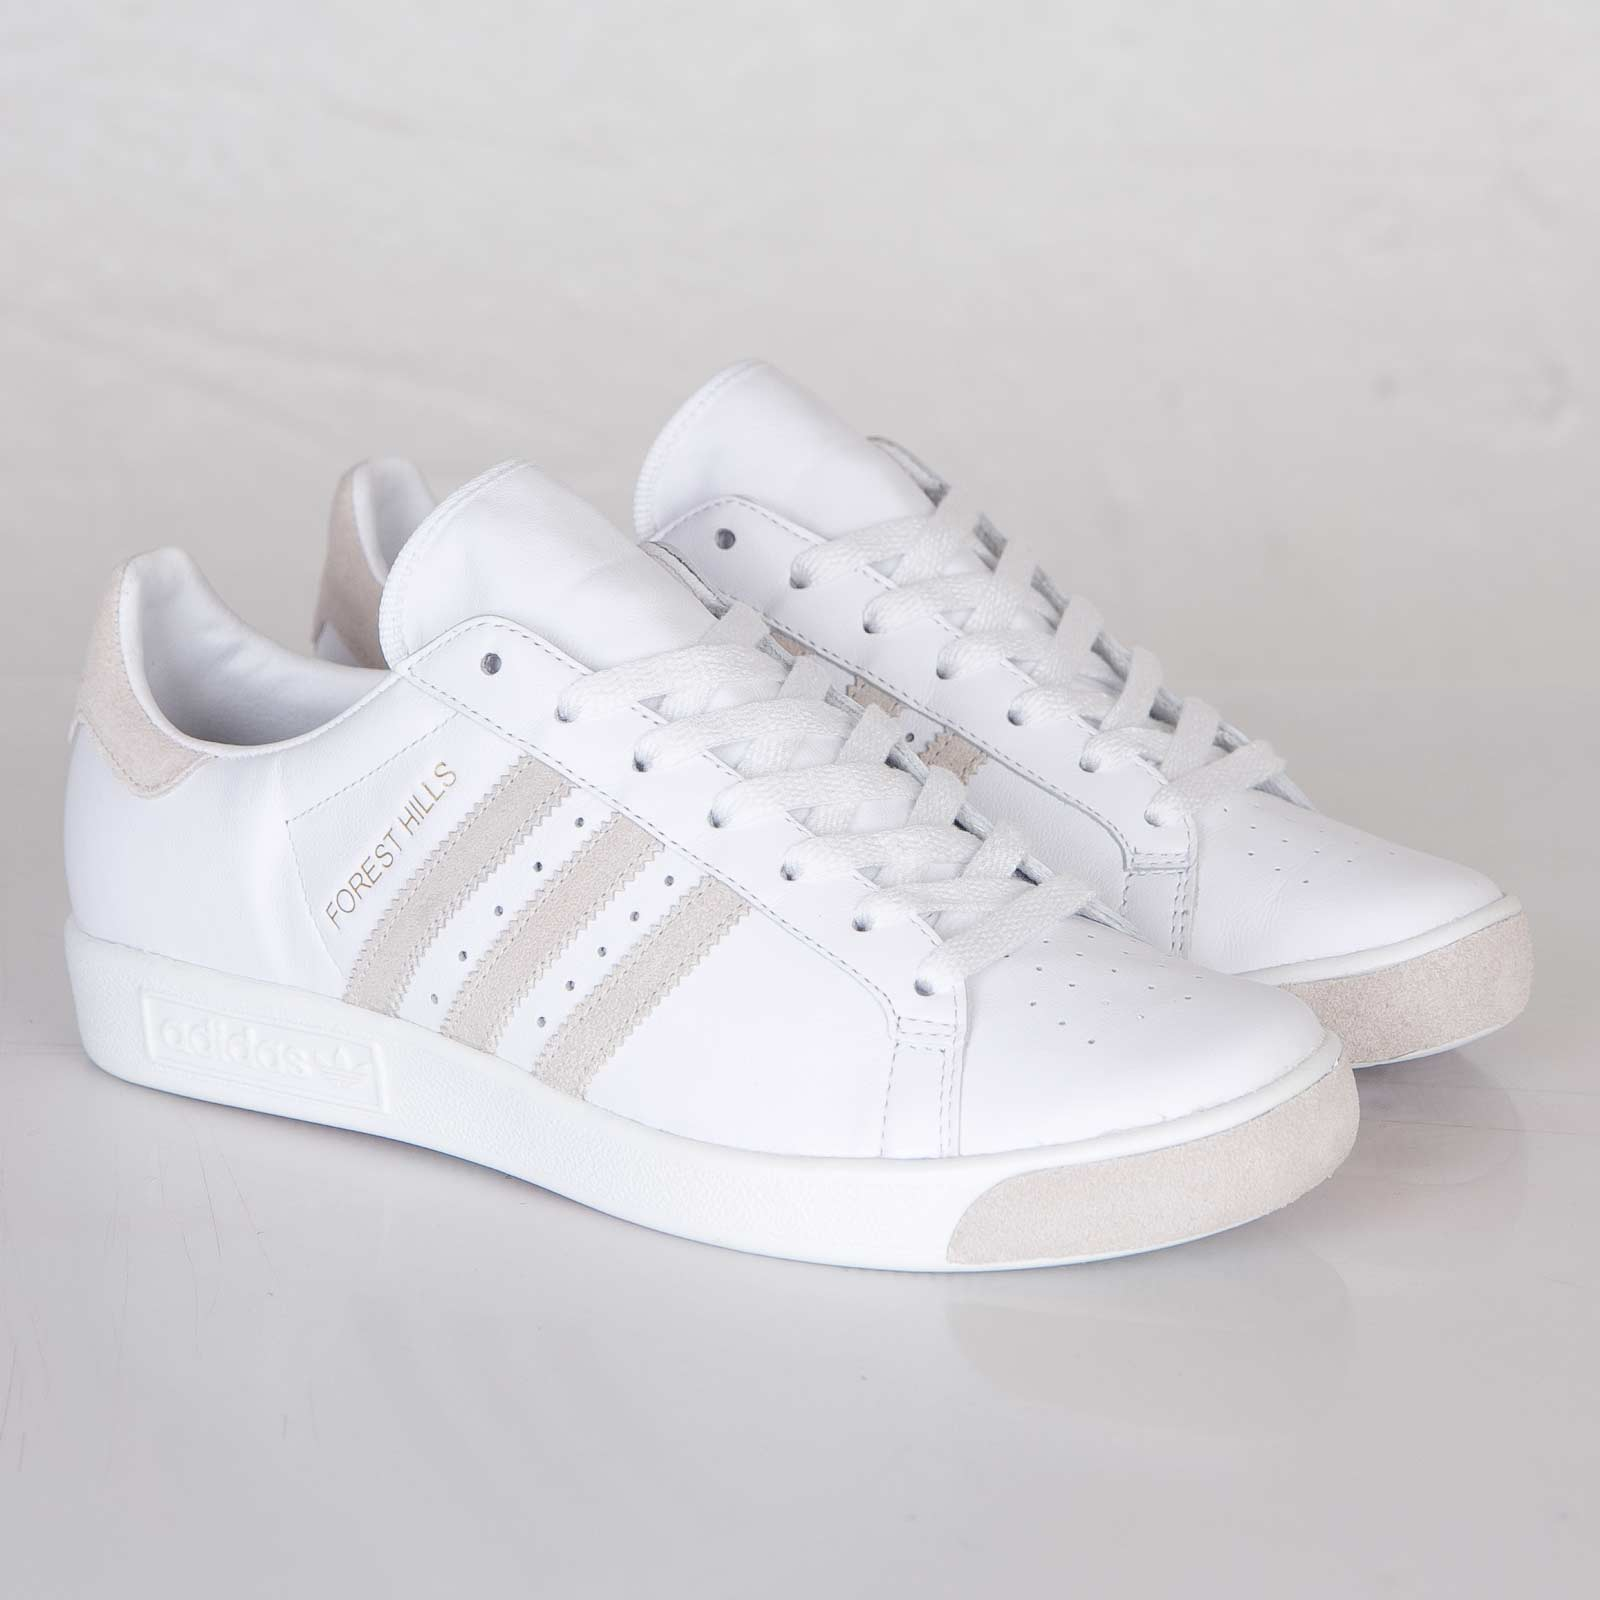 adidas Forest Hills Vin M17289 Sneakersnstuff | sneakers